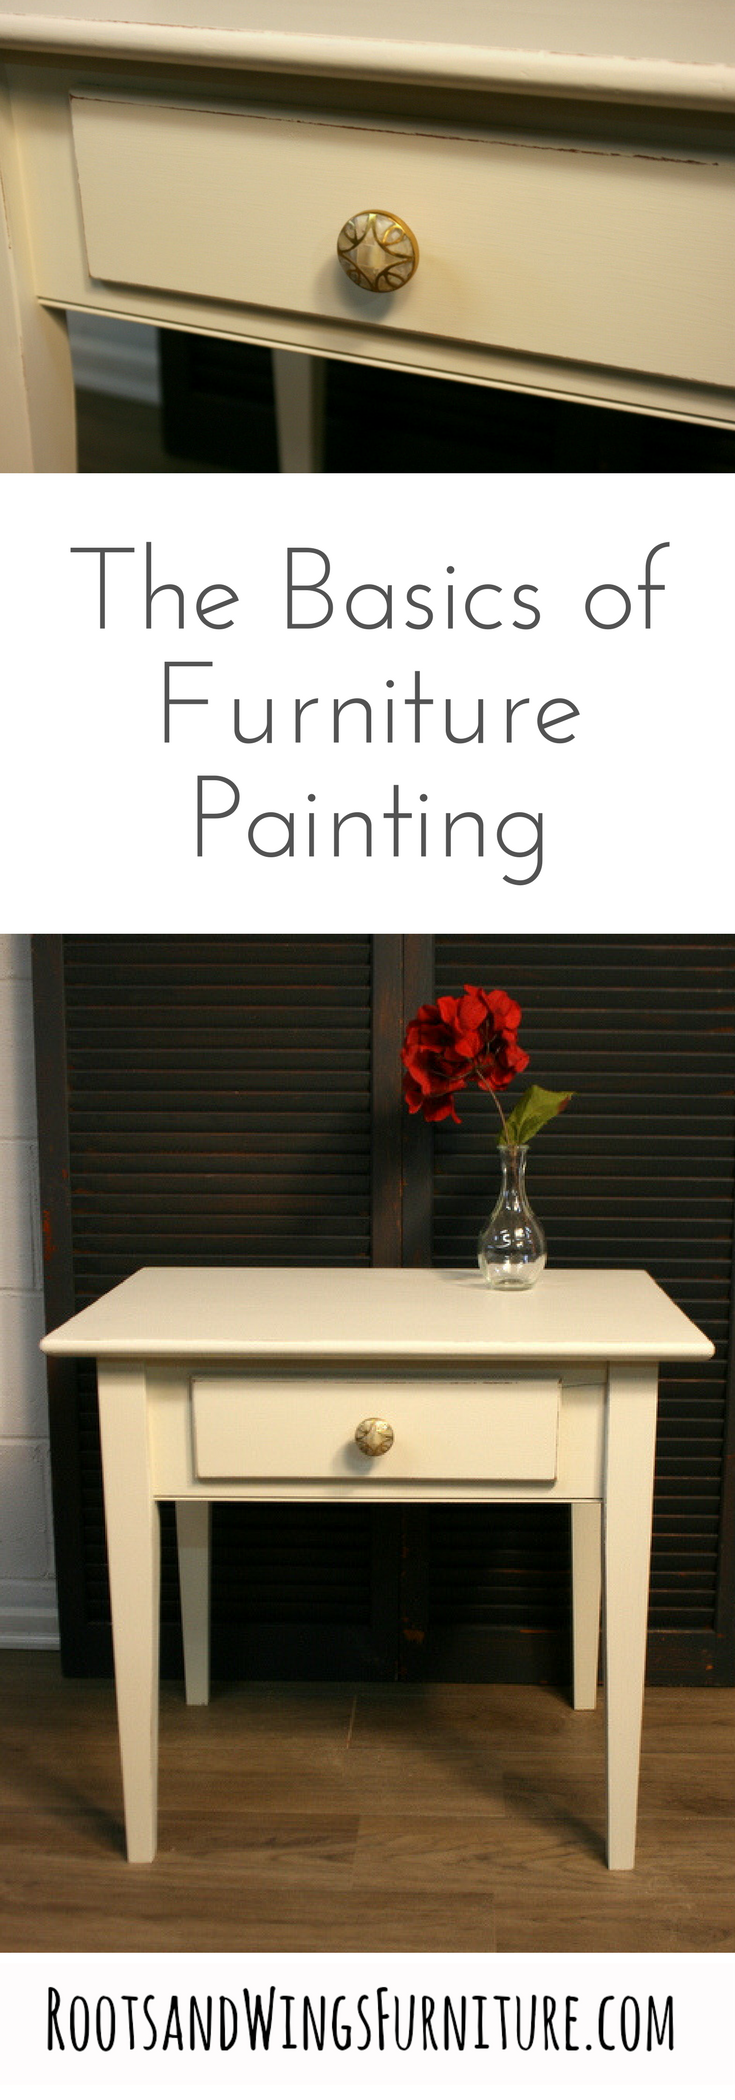 http://www.rootsandwingsfurniture.com/blog/furniture101